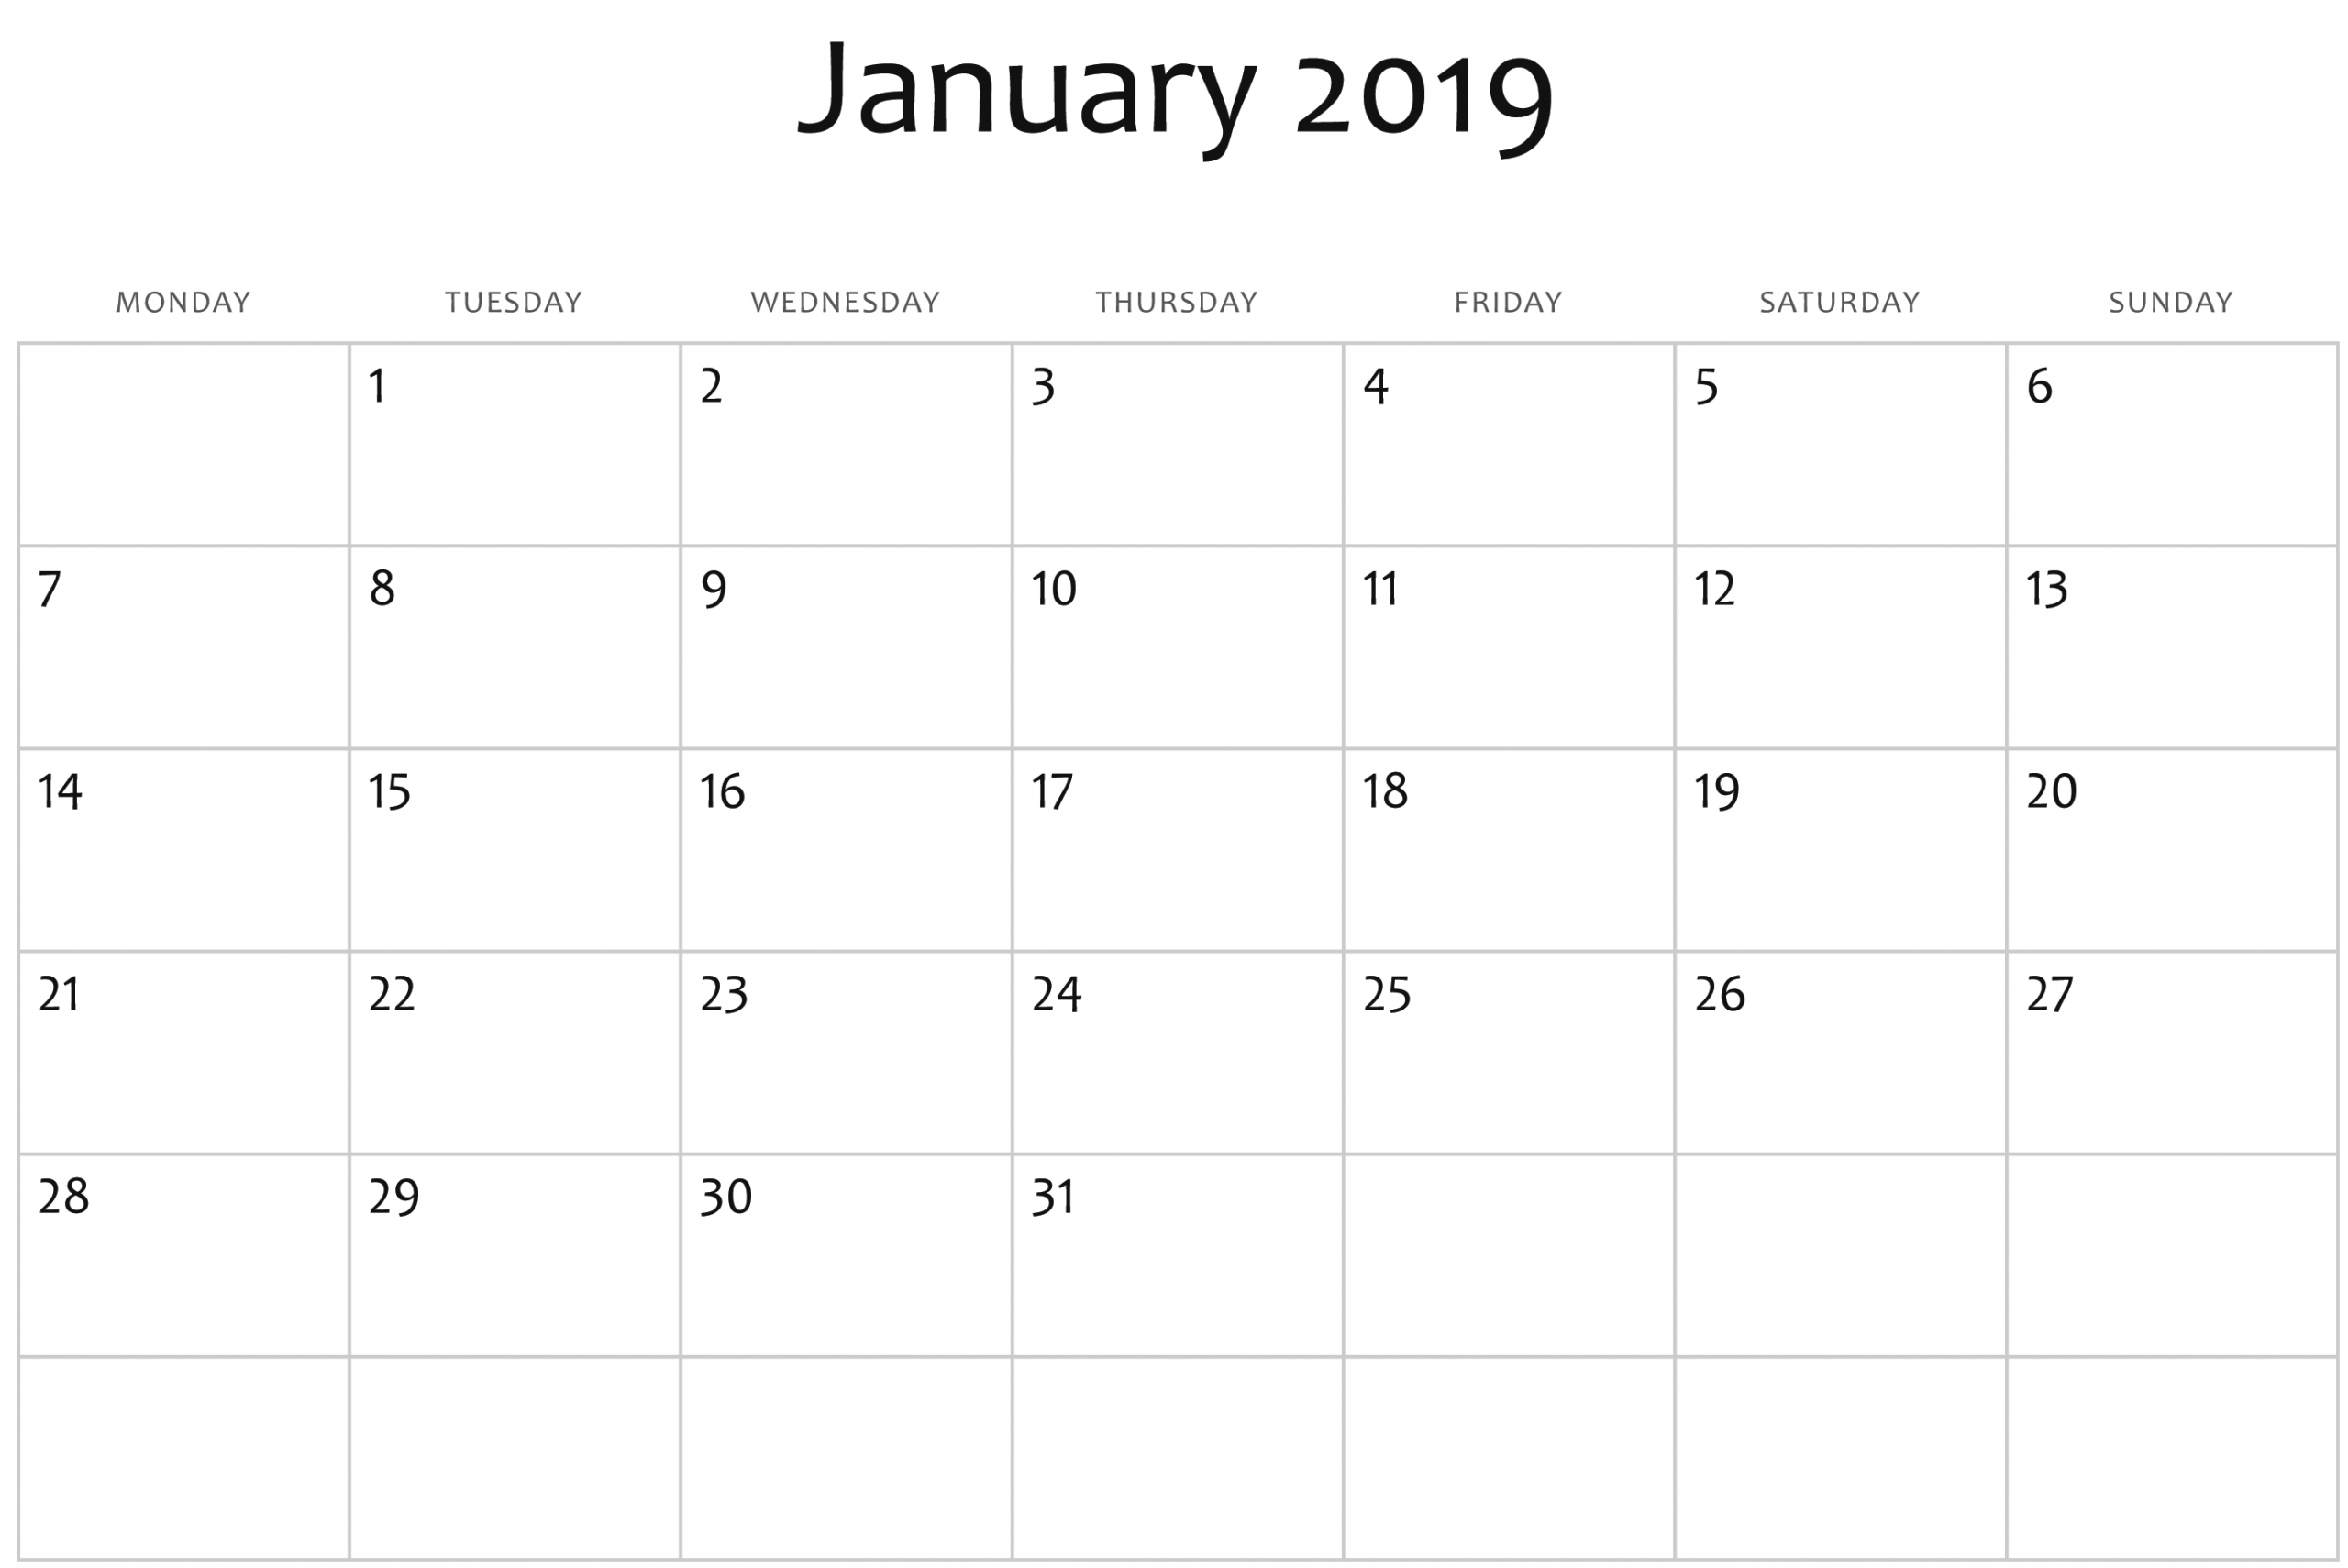 January 2019 Printable Calendar In Pdf Word Excel With Holidays | Monthly Calendar Template